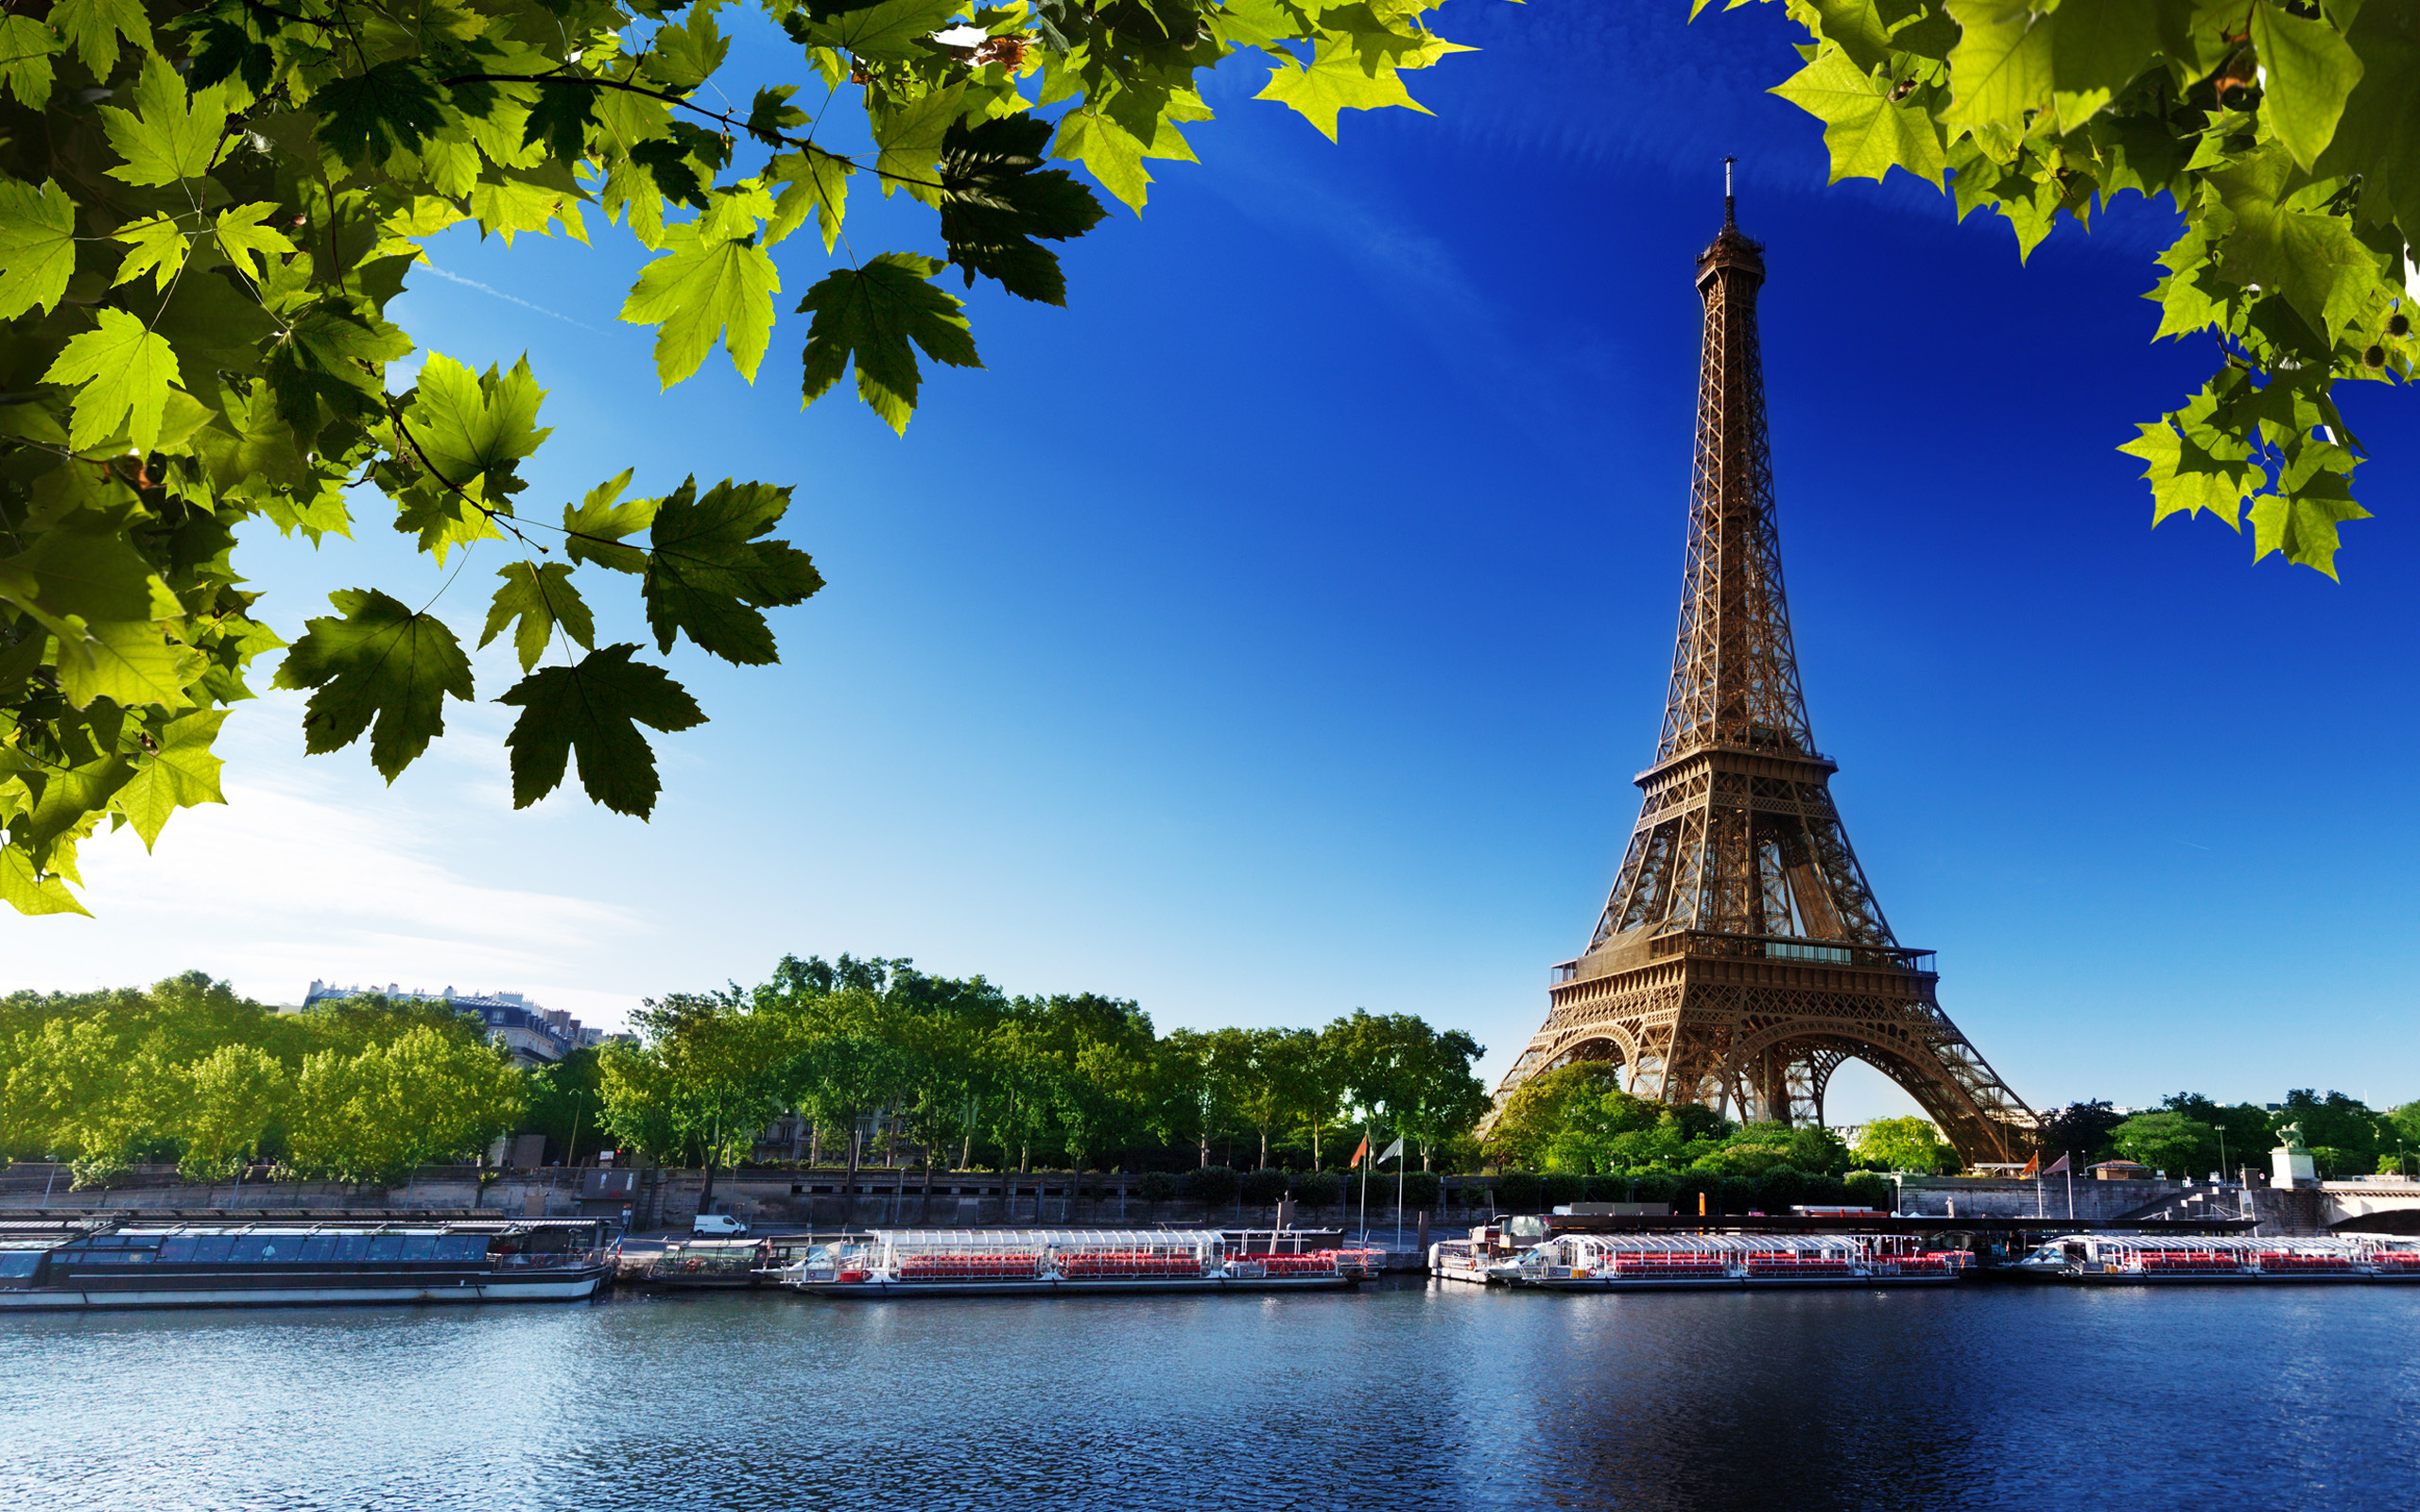 Paris Eiffel Tower Wallpaper Free Download 2015